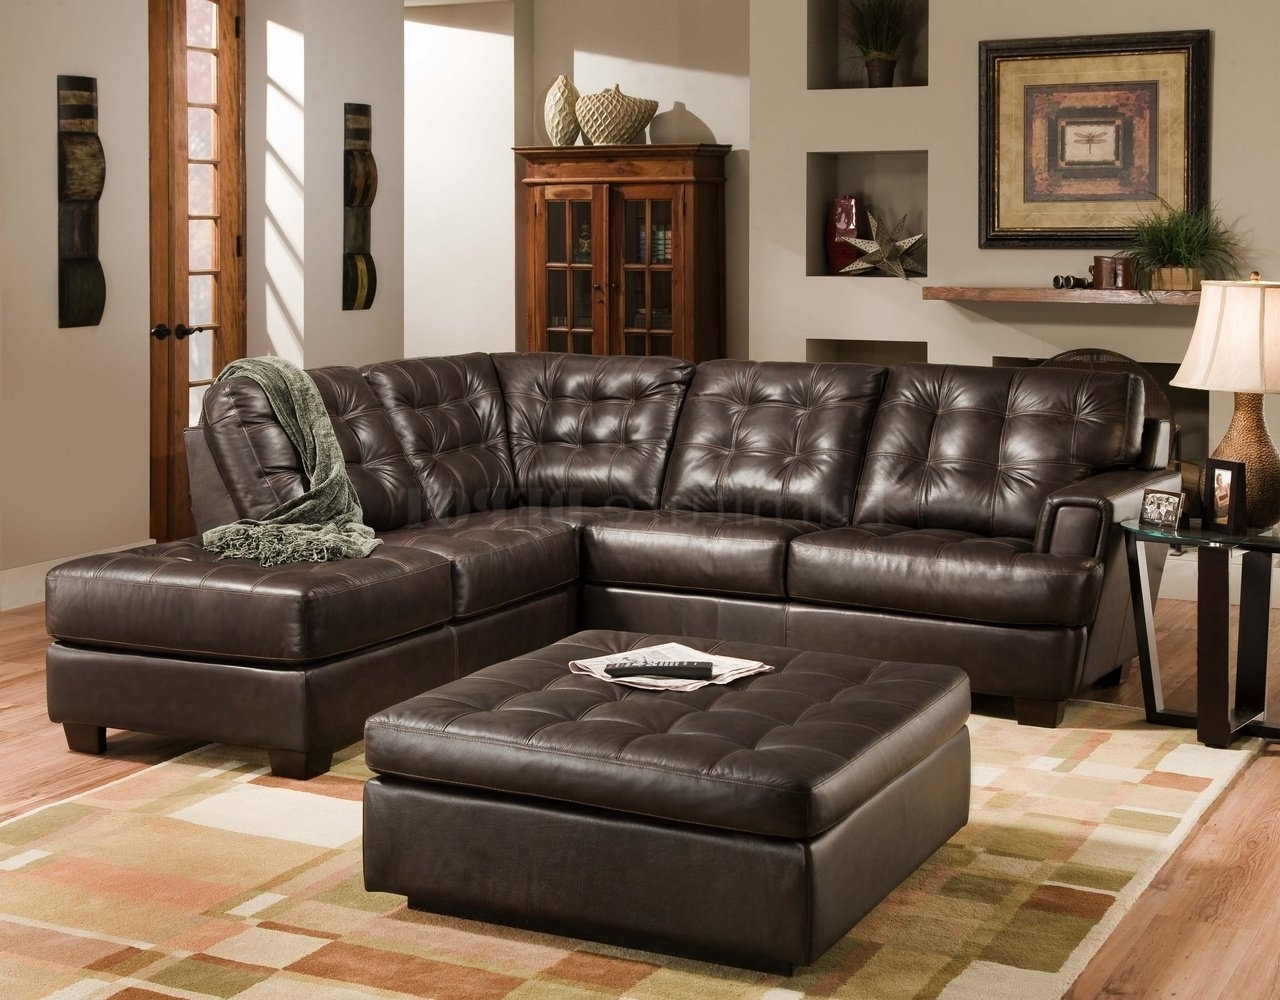 Double Chaise Loveseat Leather Loveseat With Chaise Large Within Most Up To Date Brown Sectionals With Chaise (View 5 of 15)